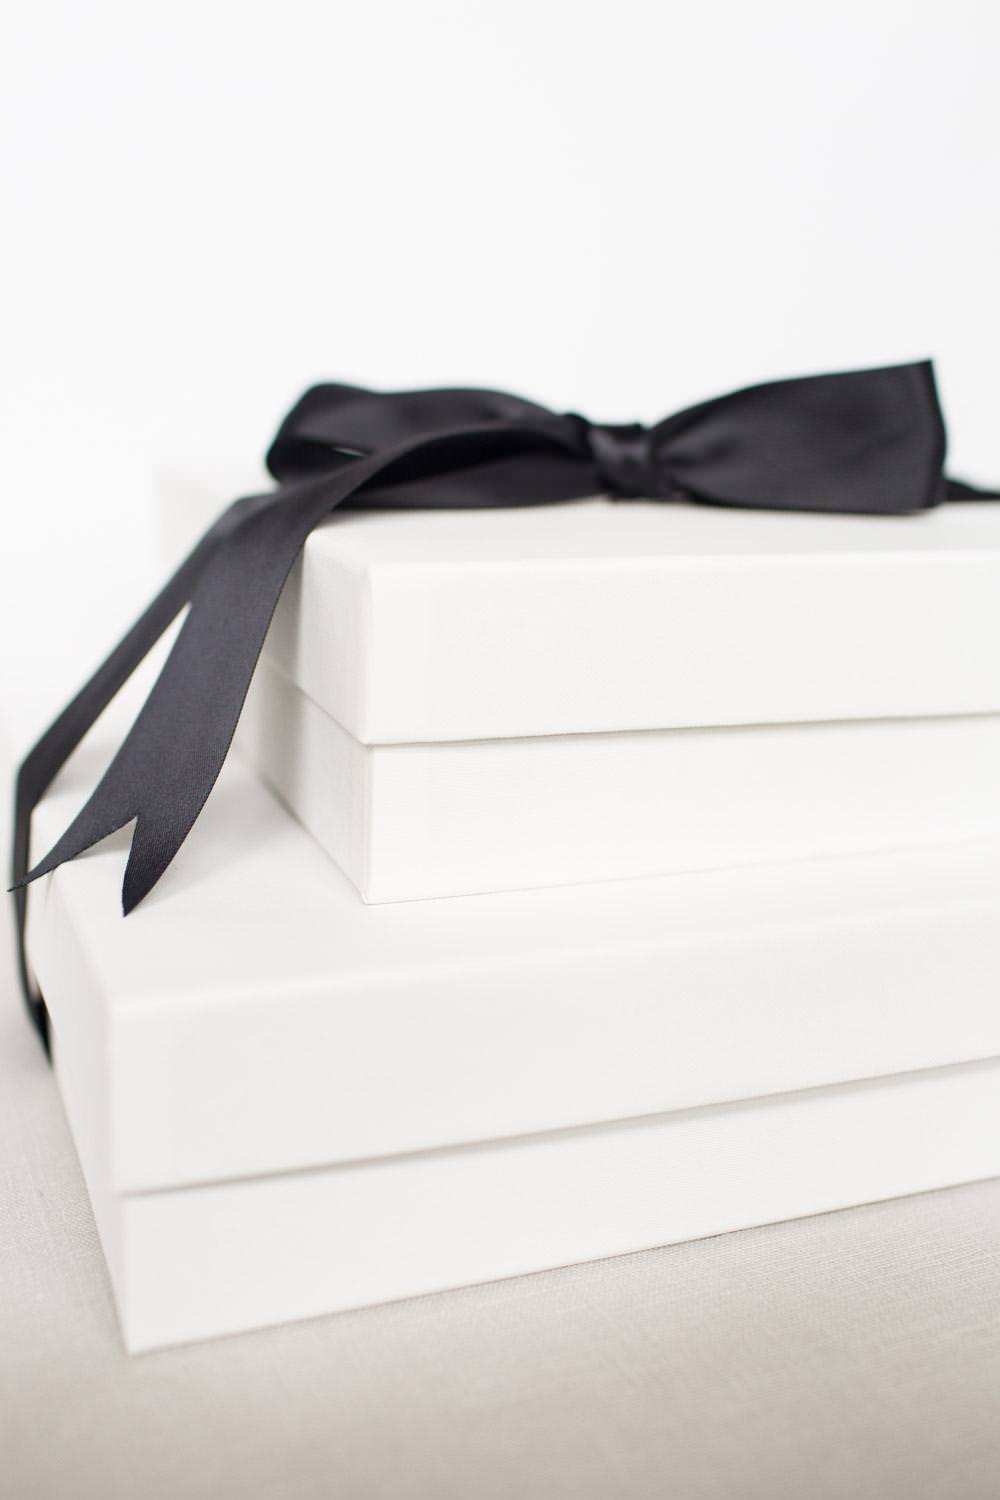 Wedding photographer chic packaging for albums, Cavin Elizabeth Photography